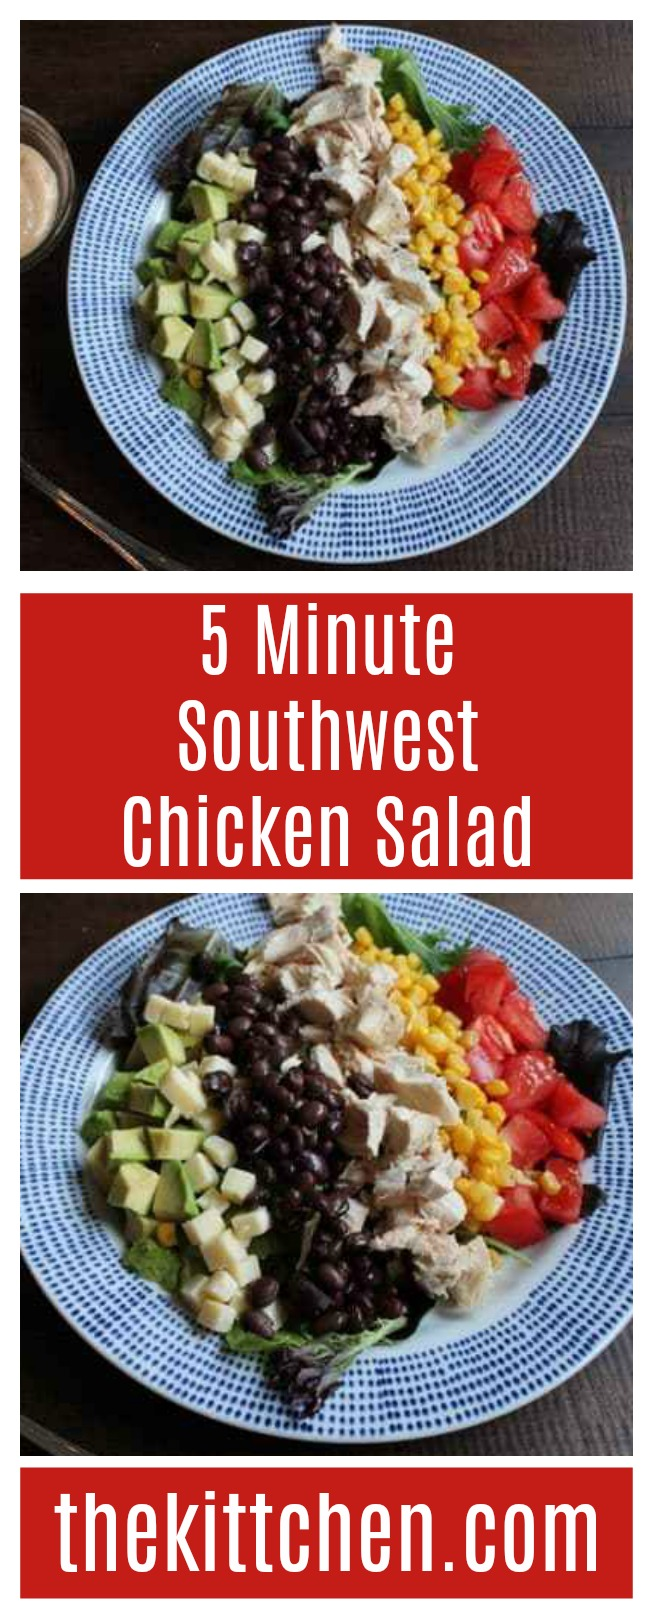 5 Minute Southwest Chicken Salad